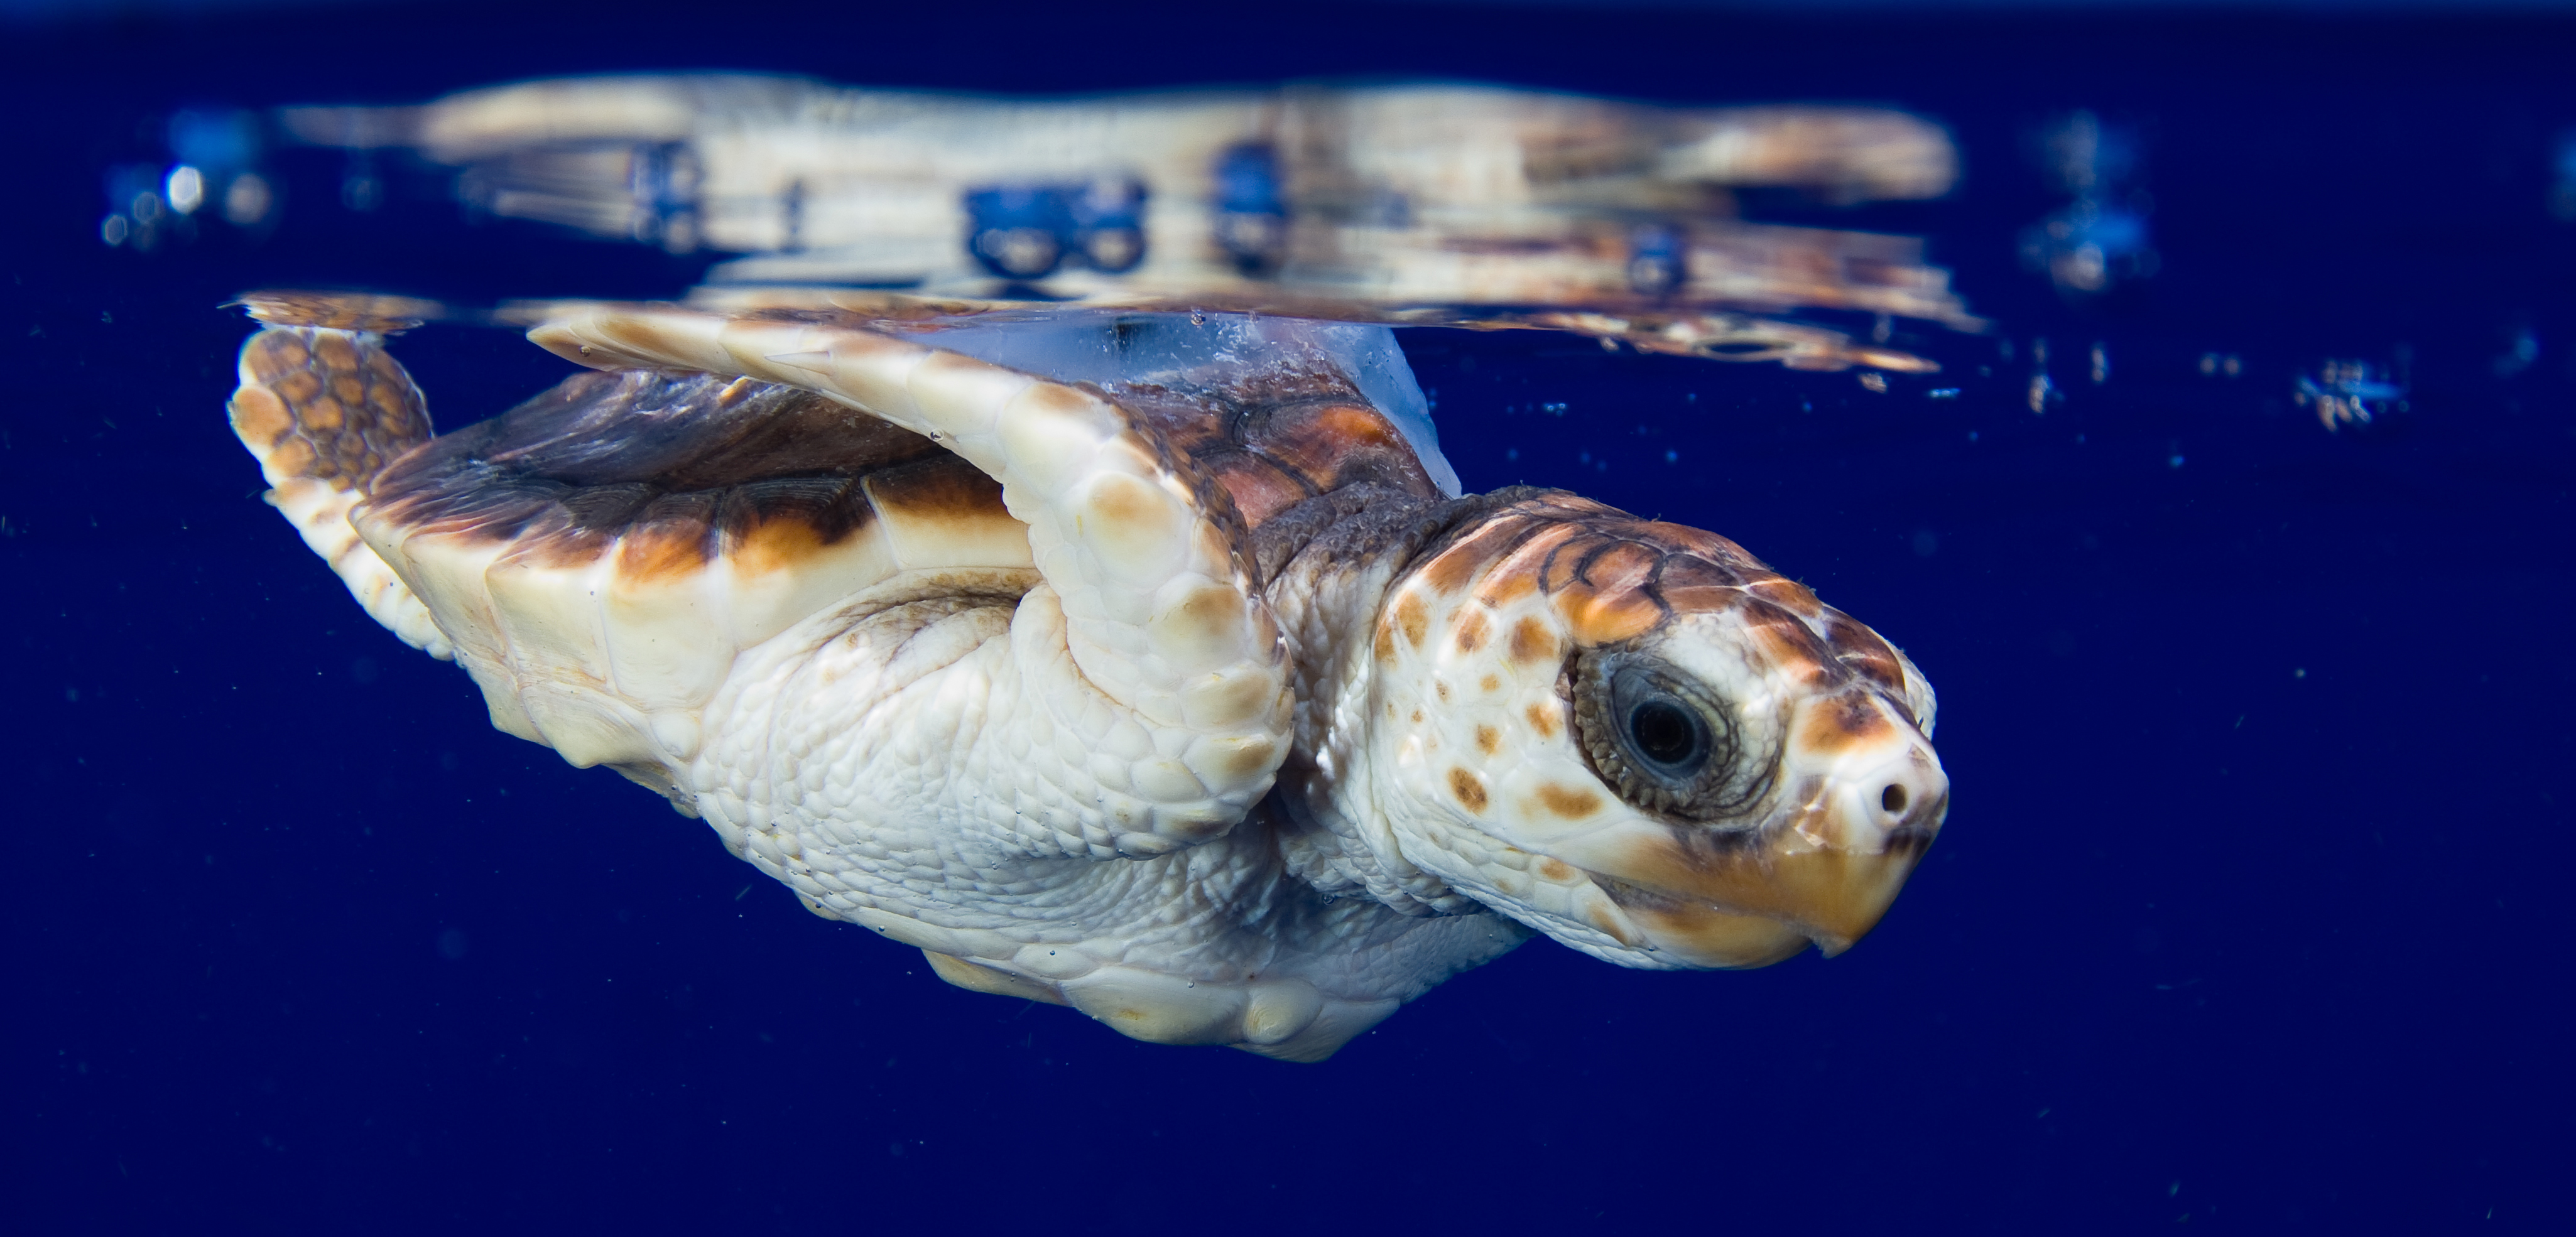 A baby sea turtle swims in the Gulf of Mexico. Photo by the University of Central Florida